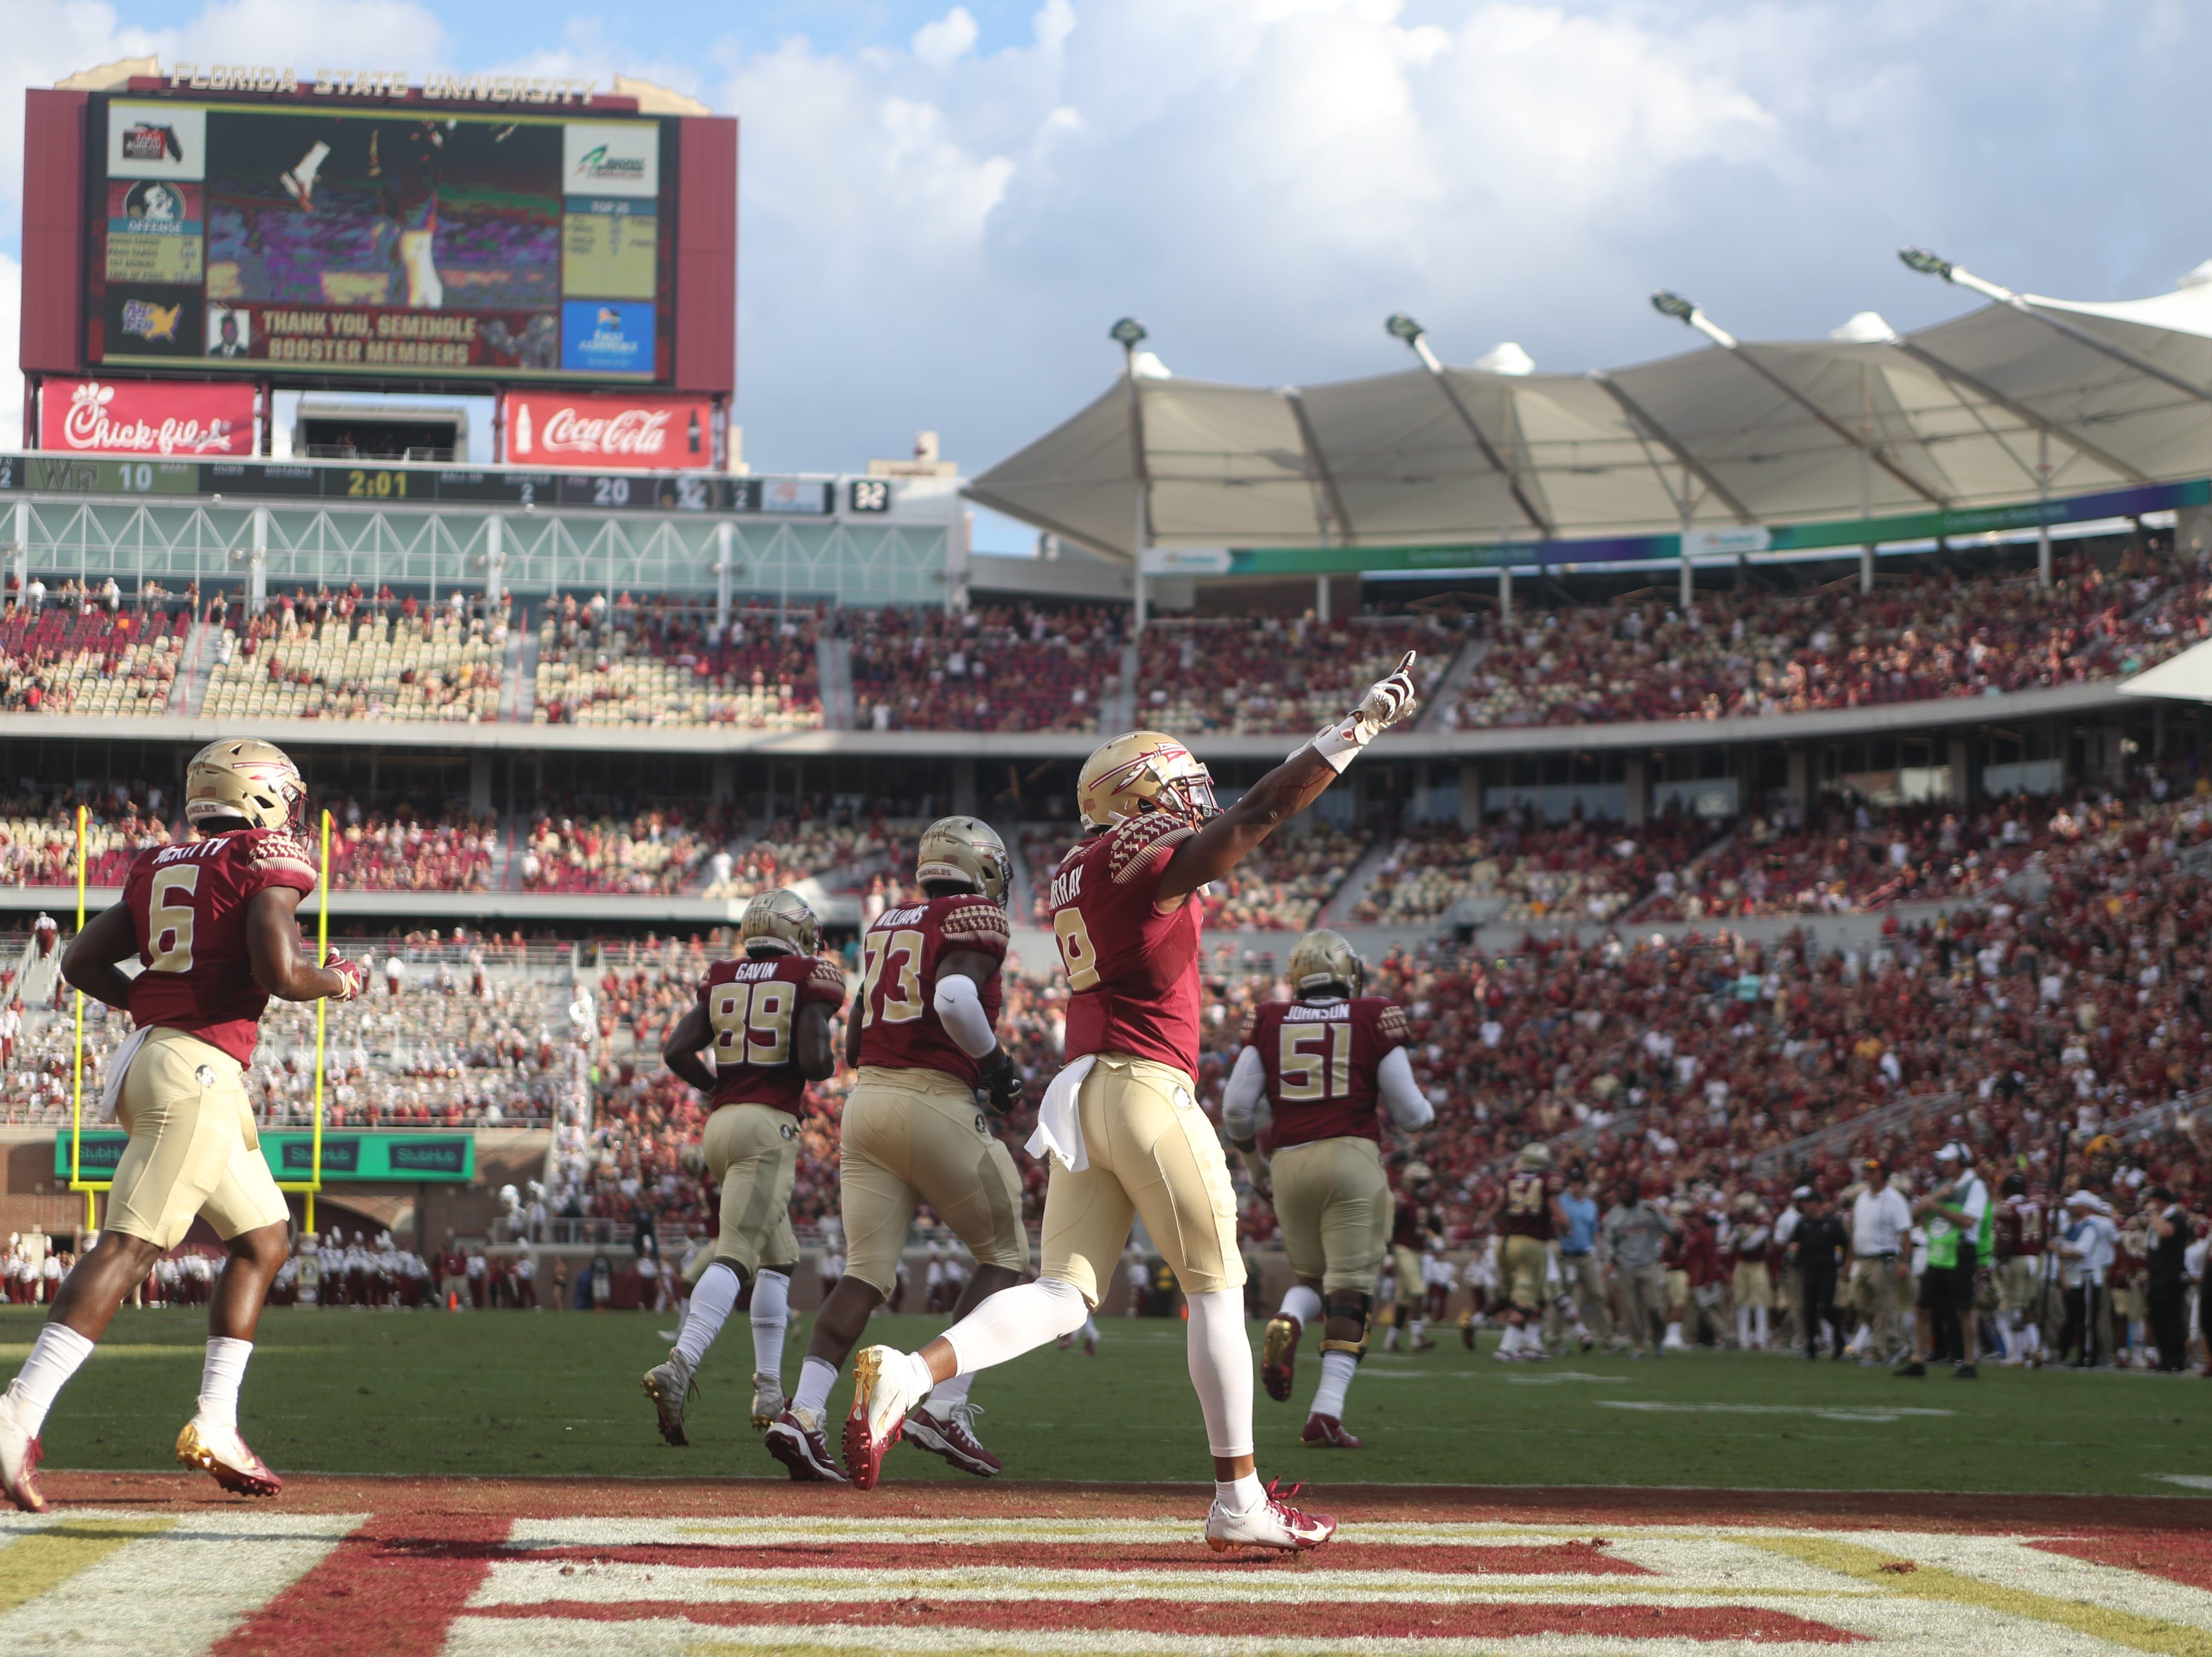 Florida State Seminoles wide receiver Nyqwan Murray (8) celebrates after scoring a touchdown during FSU's homecoming game against Wake Forest at Doak S. Campbell Stadium Saturday, Oct. 20, 2018.